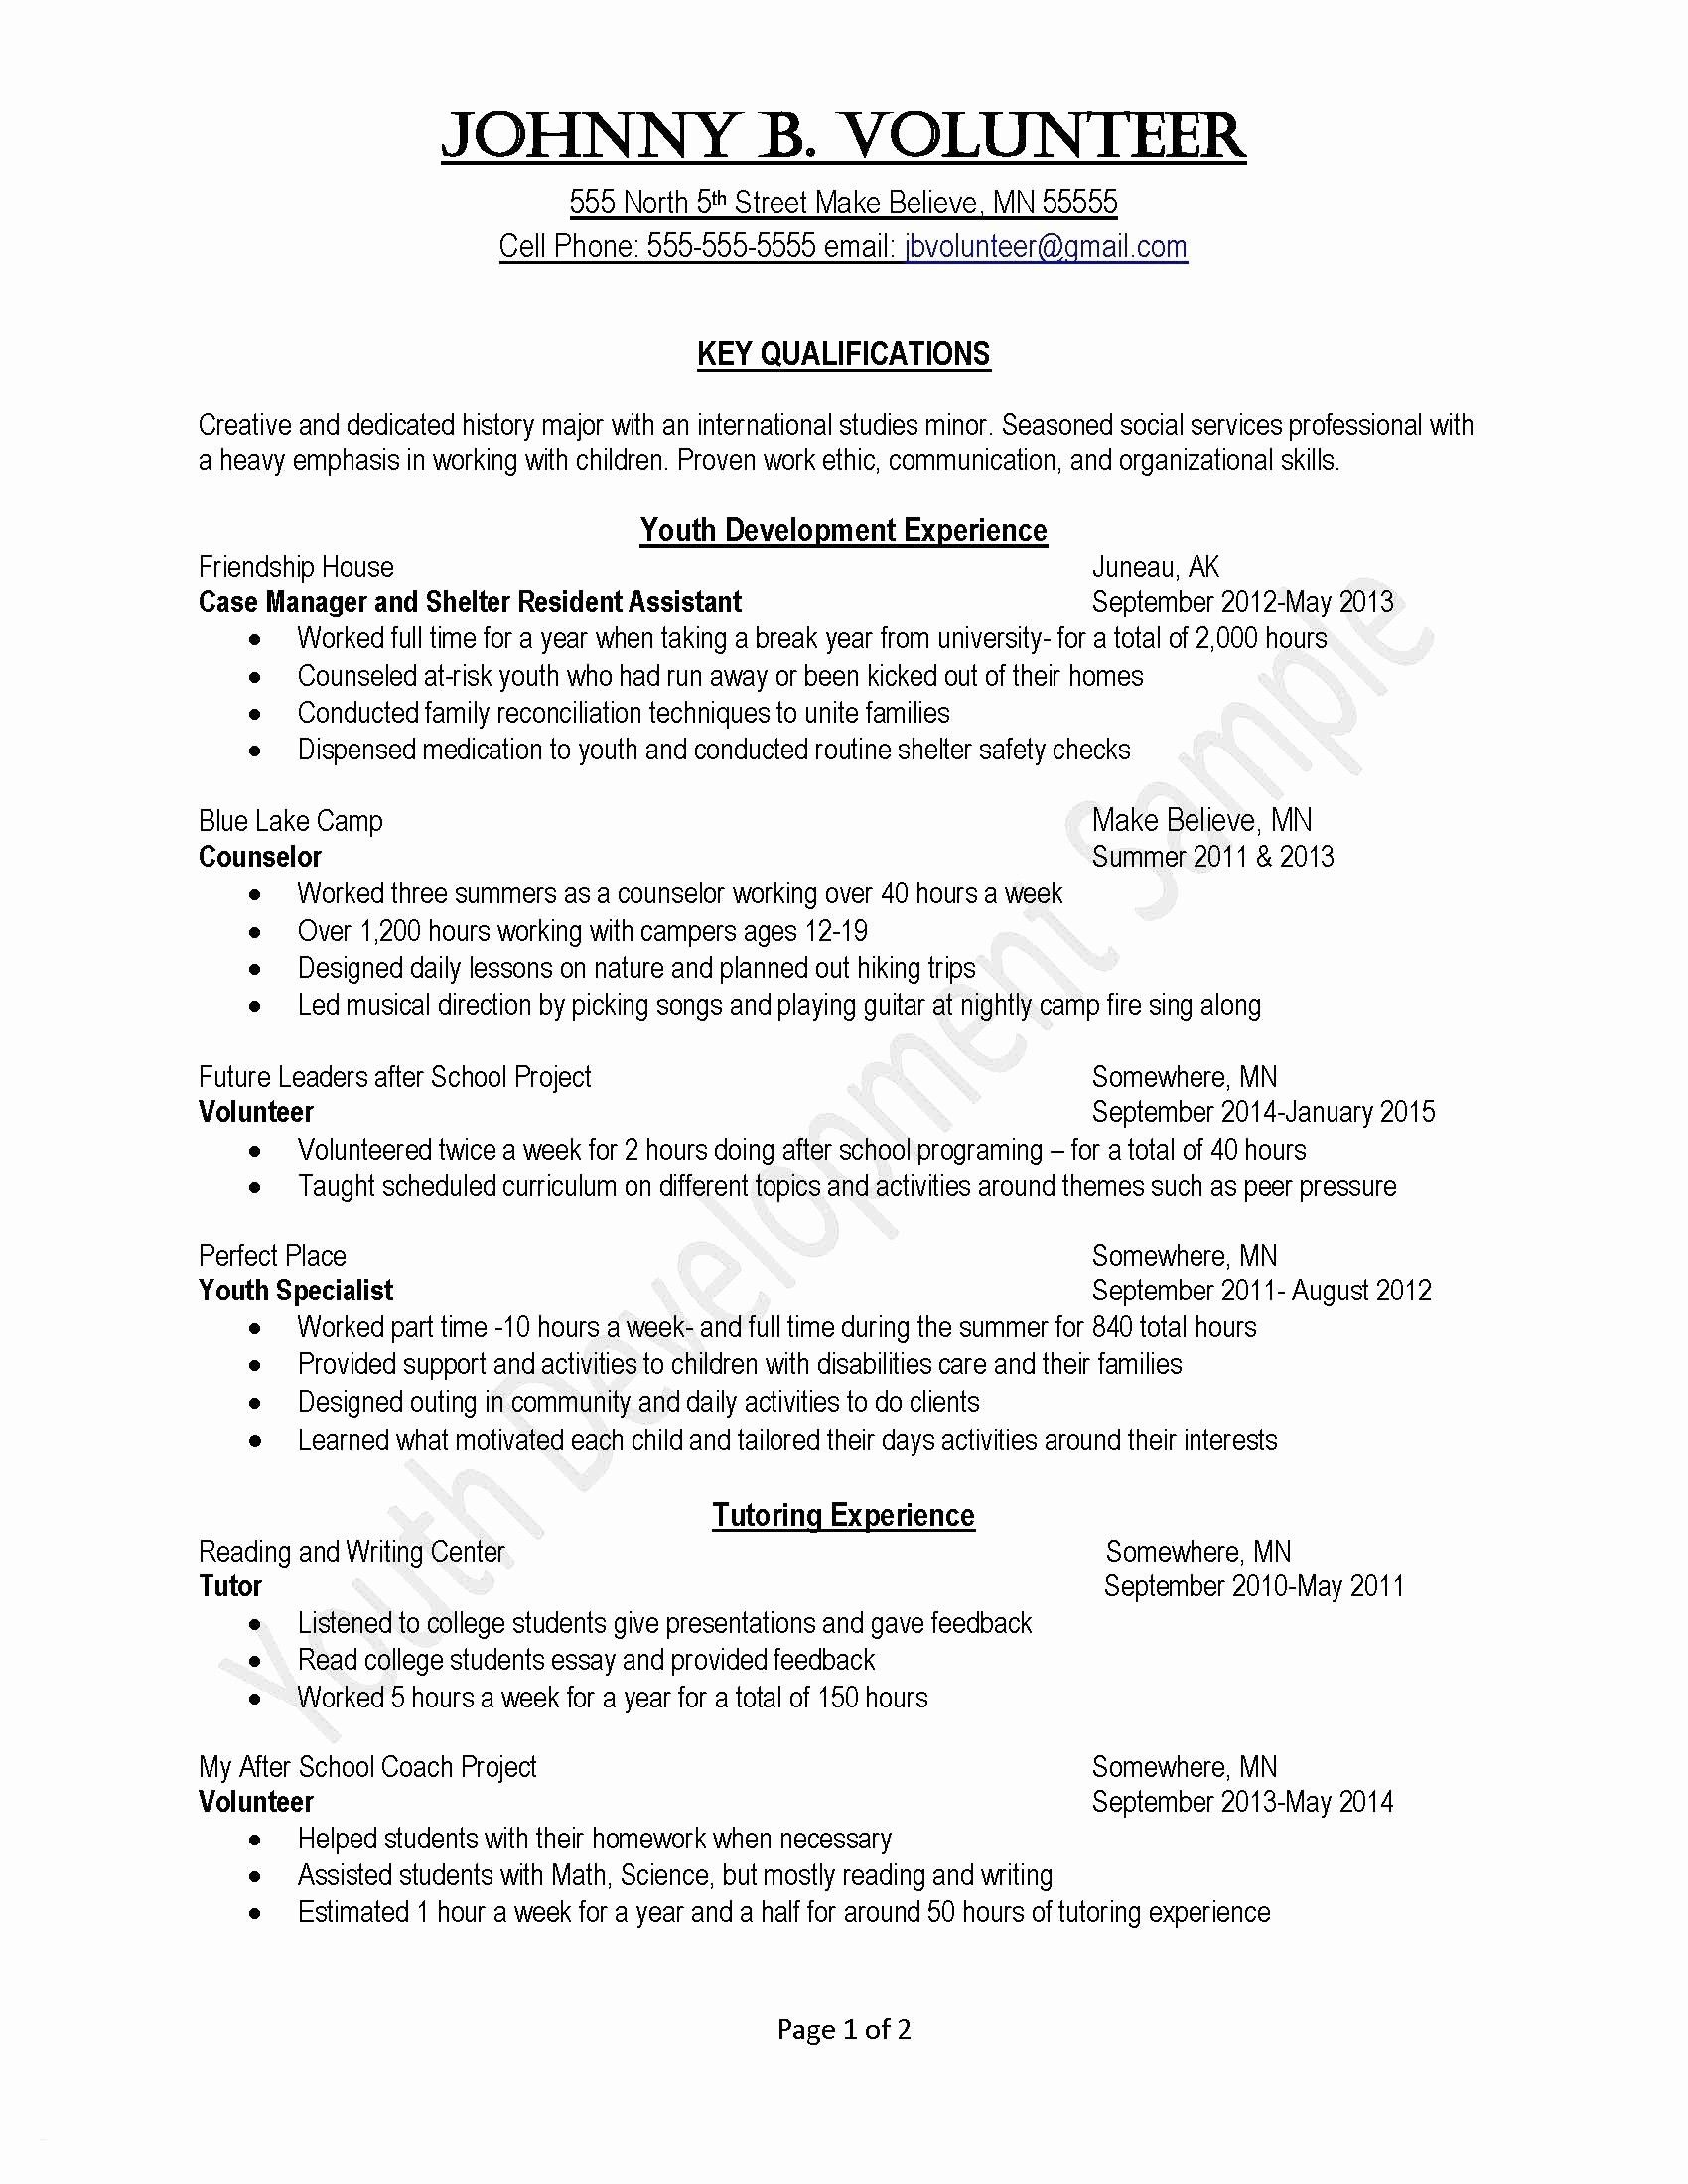 Cv Template For Over 40 Resume Examples Business Proposal Template Resume Skills Cover Letter For Resume